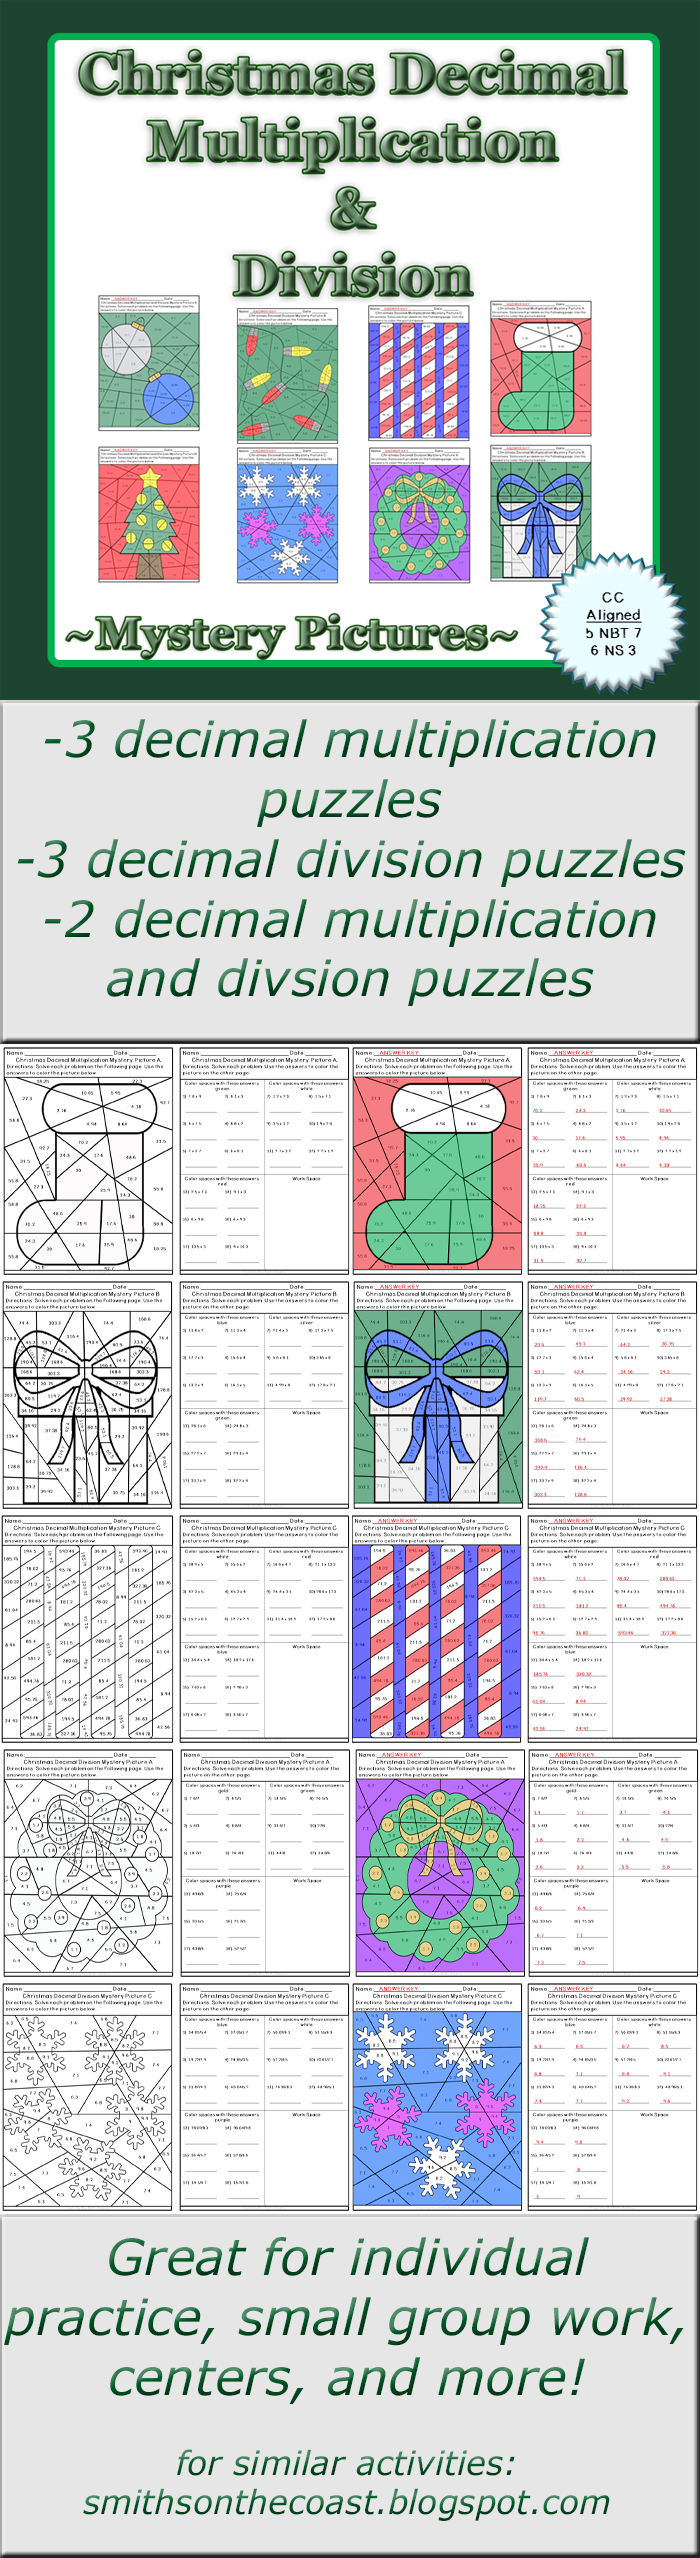 Christmas Decimal Multiplication and Division Mystery Pictures ...